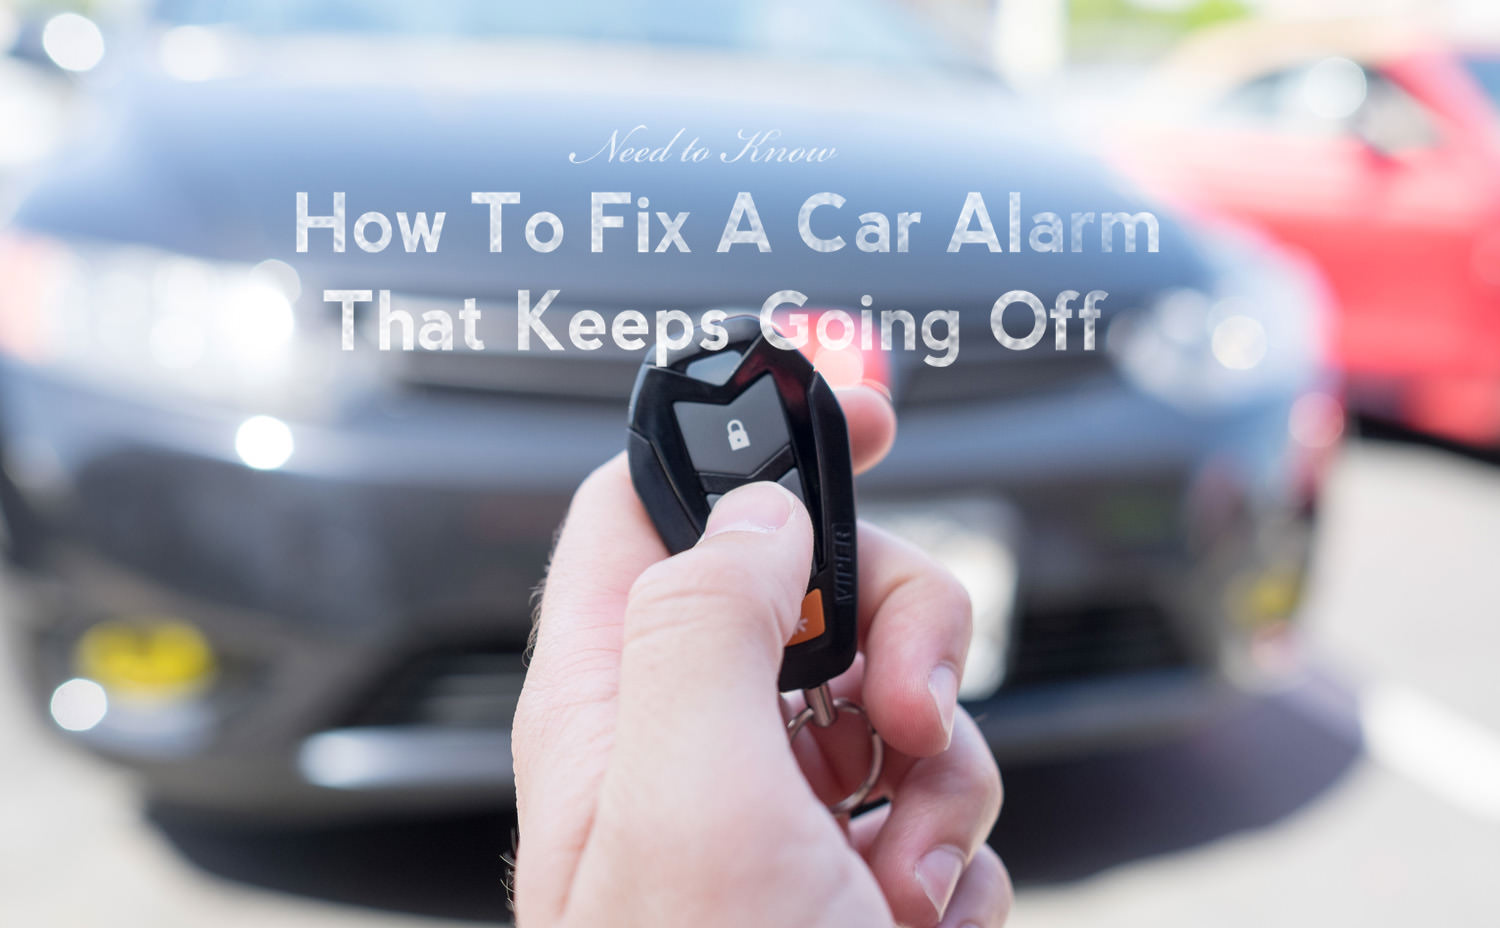 How to Fix an Alarm that Keeps Going Off